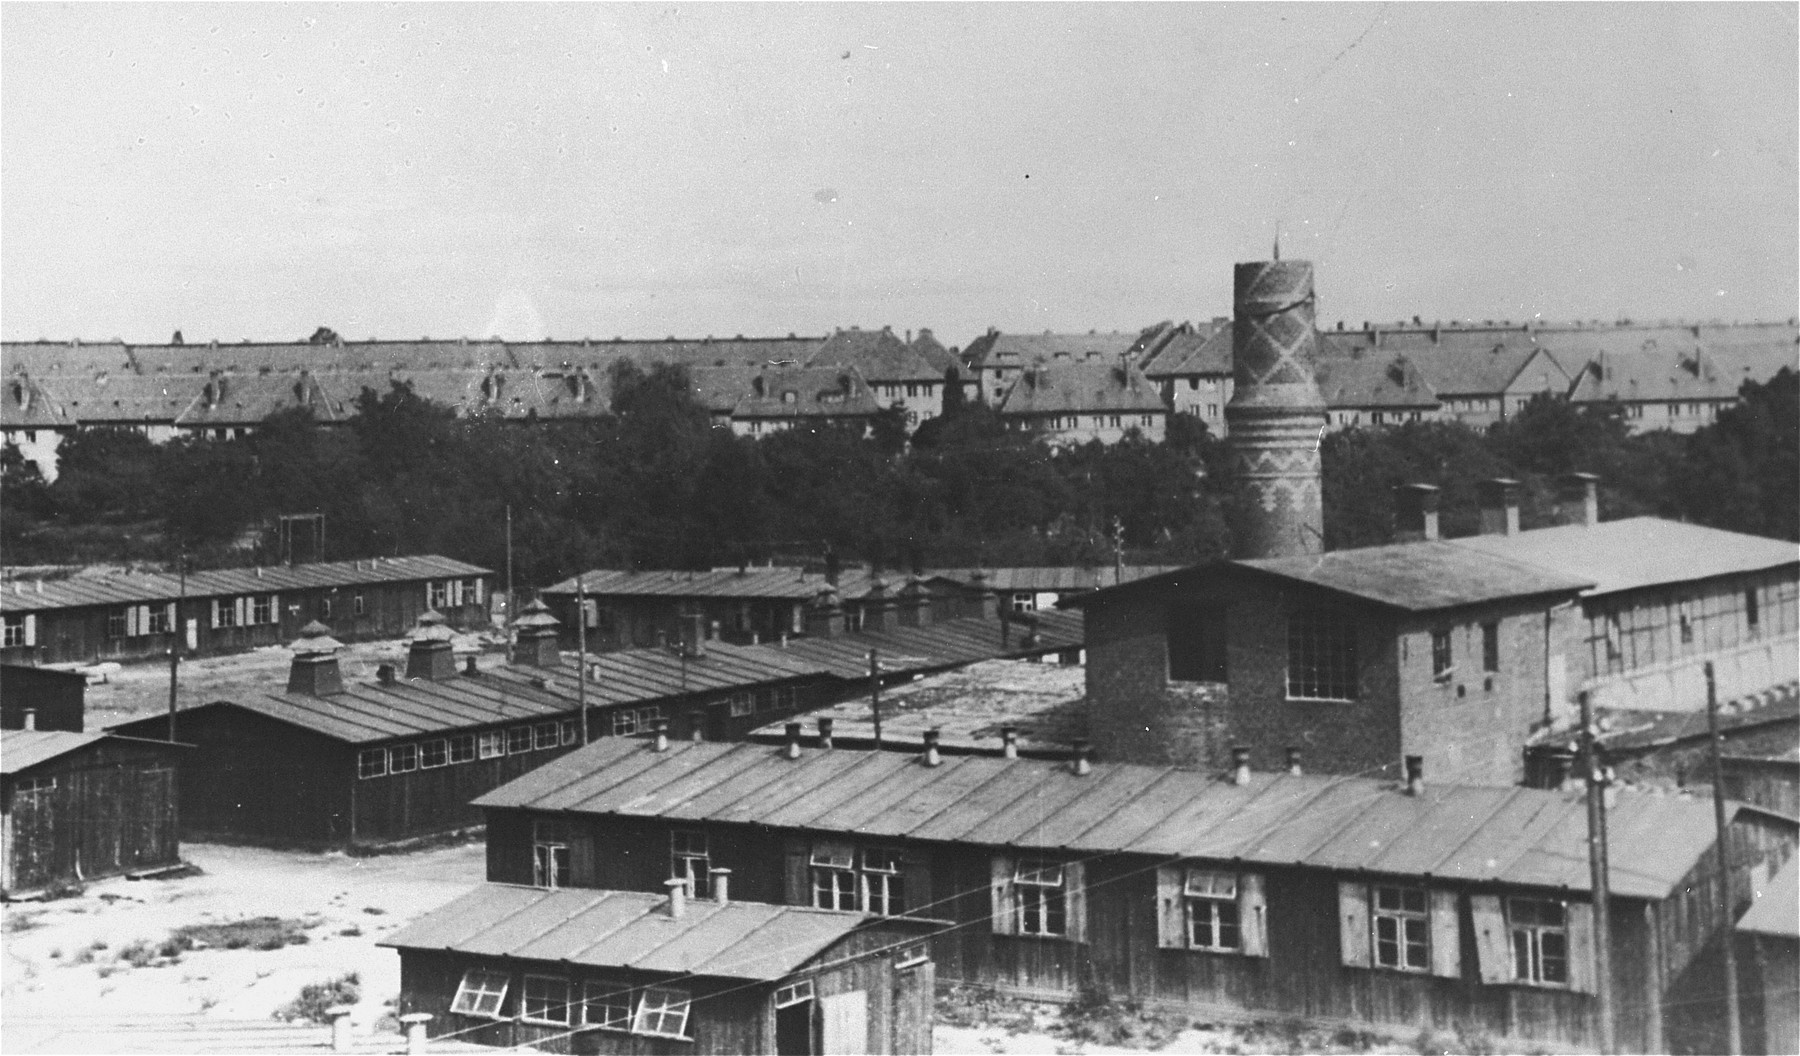 The Biesinitzer Grund (Goerlitz) concentration camp, a sub-camp of Gross-Rosen, after liberation.